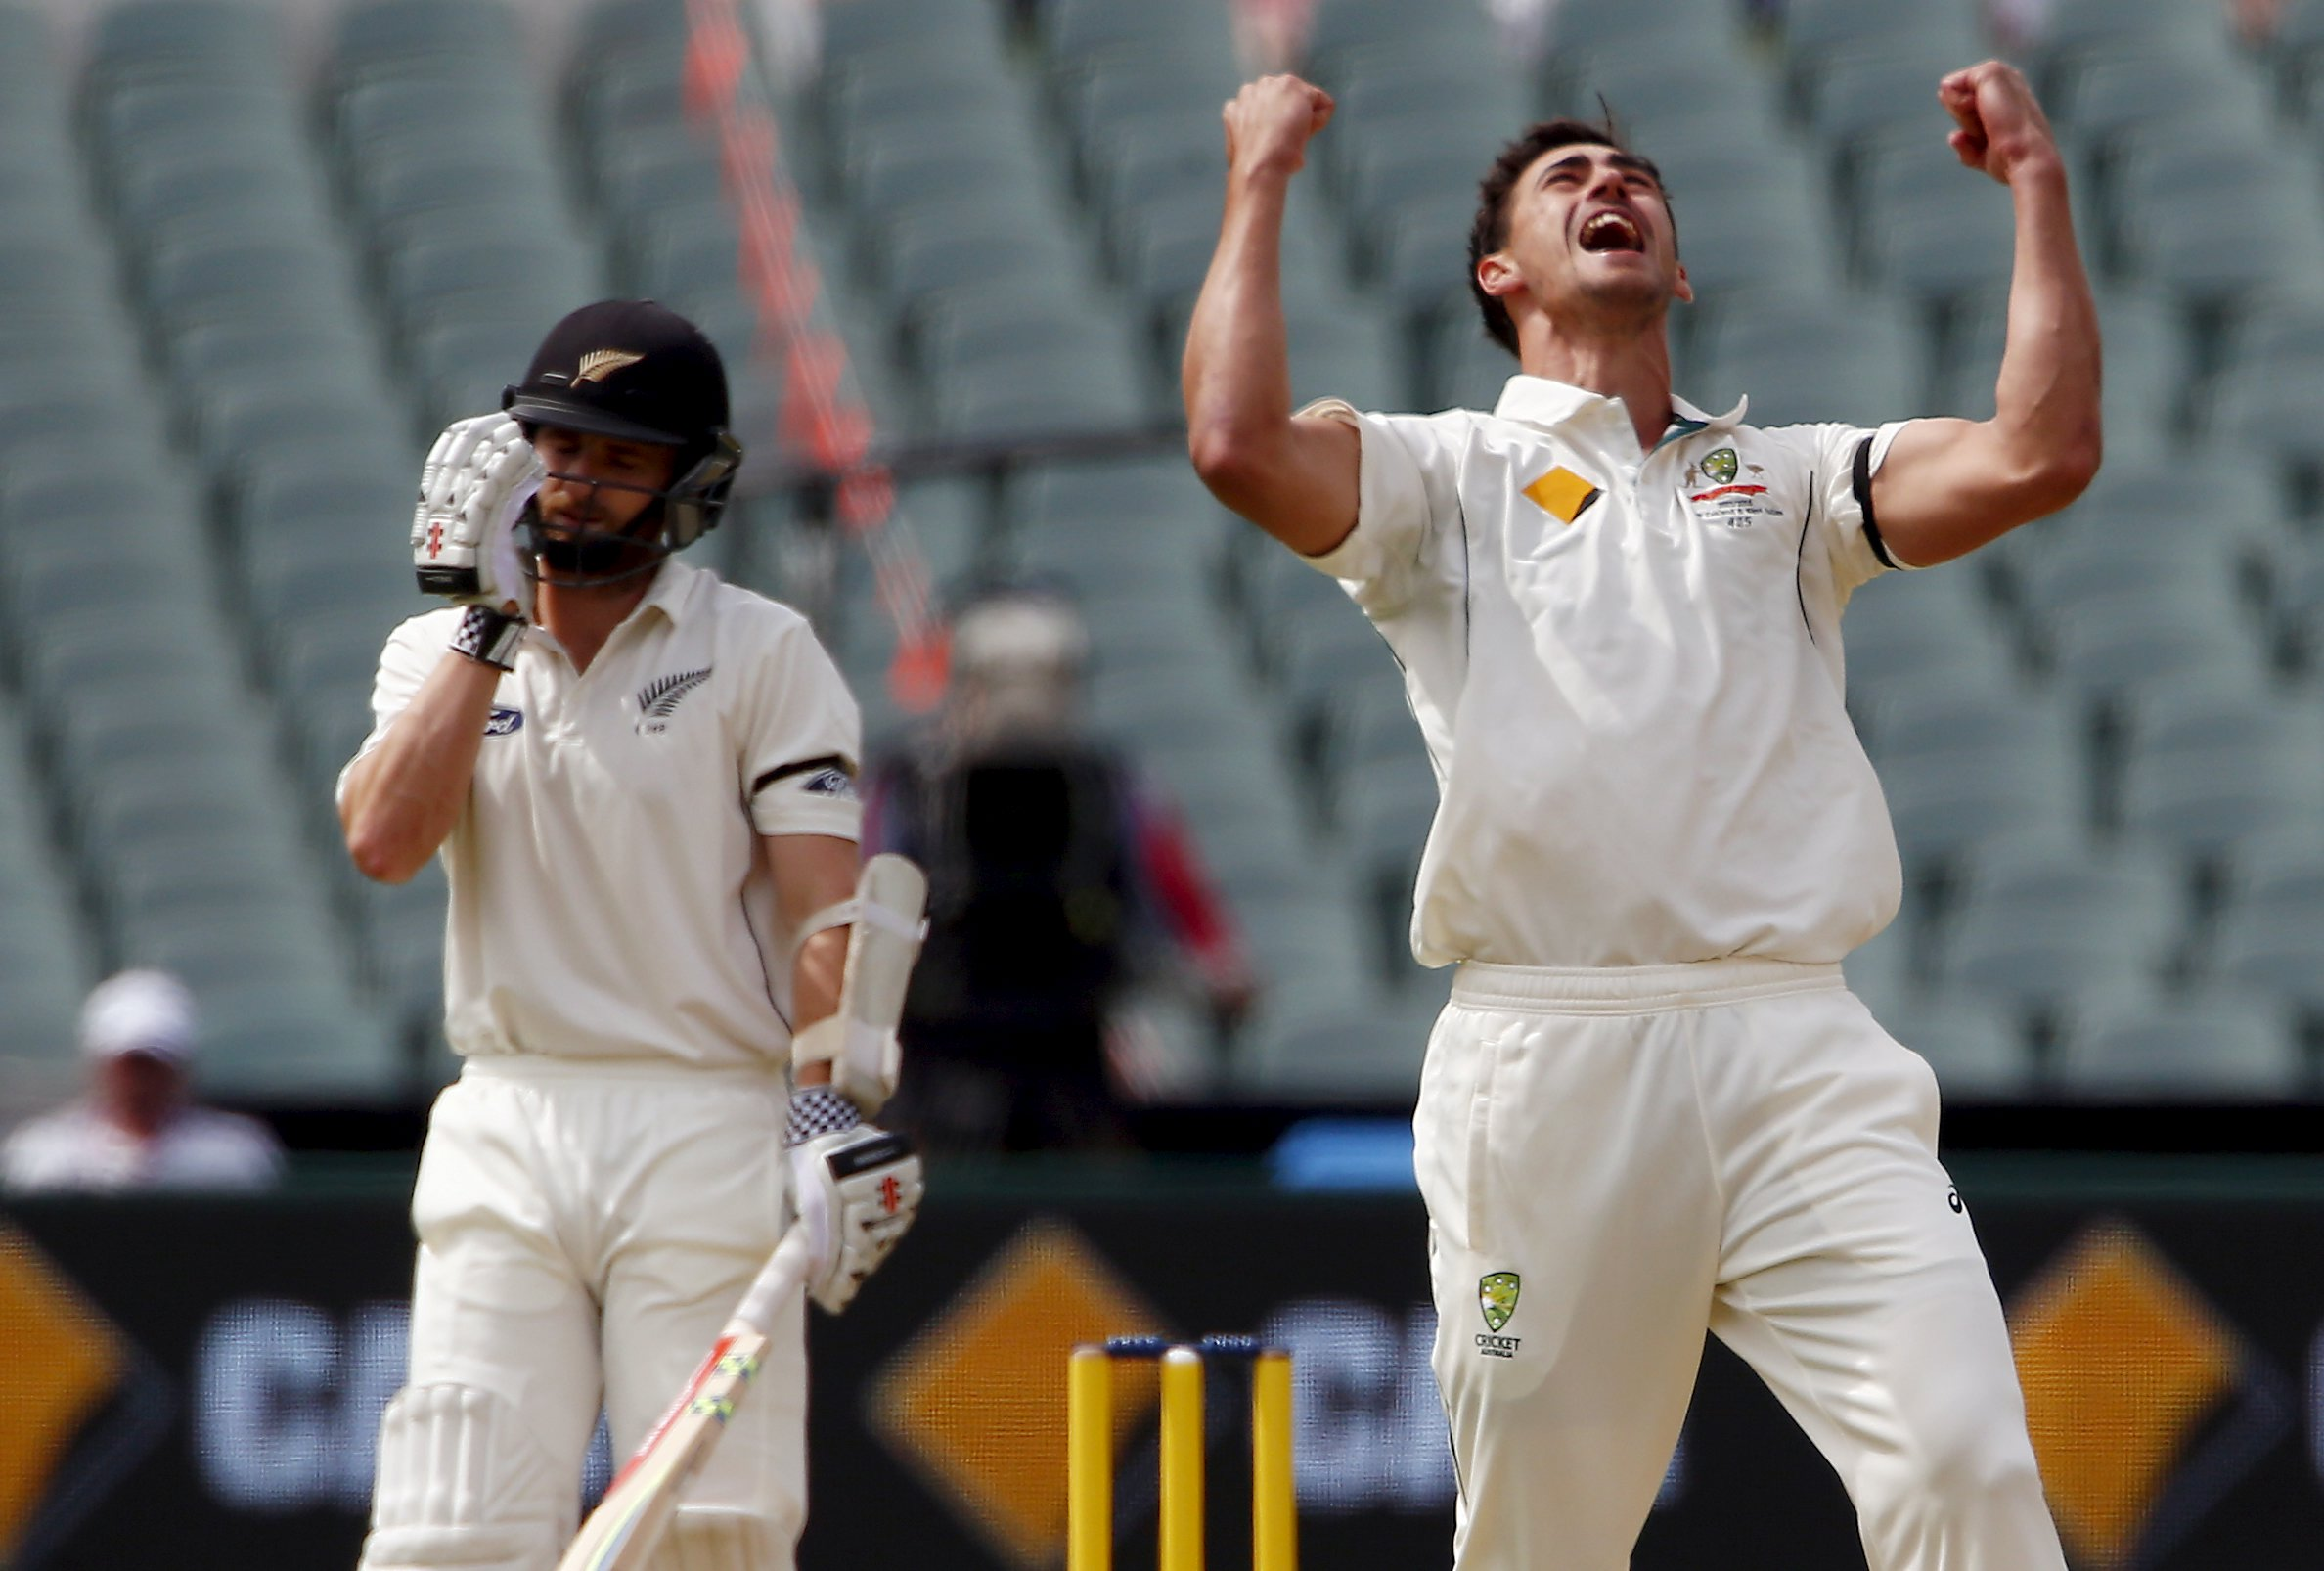 Australia's Mitchell Starc (right) celebrates dismissing New Zealand's Kane Williamson LBW for 22 runs during the first day of the third cricket test match at the Adelaide Oval, in South Australia, November 27, 2015. Photo: Reuters